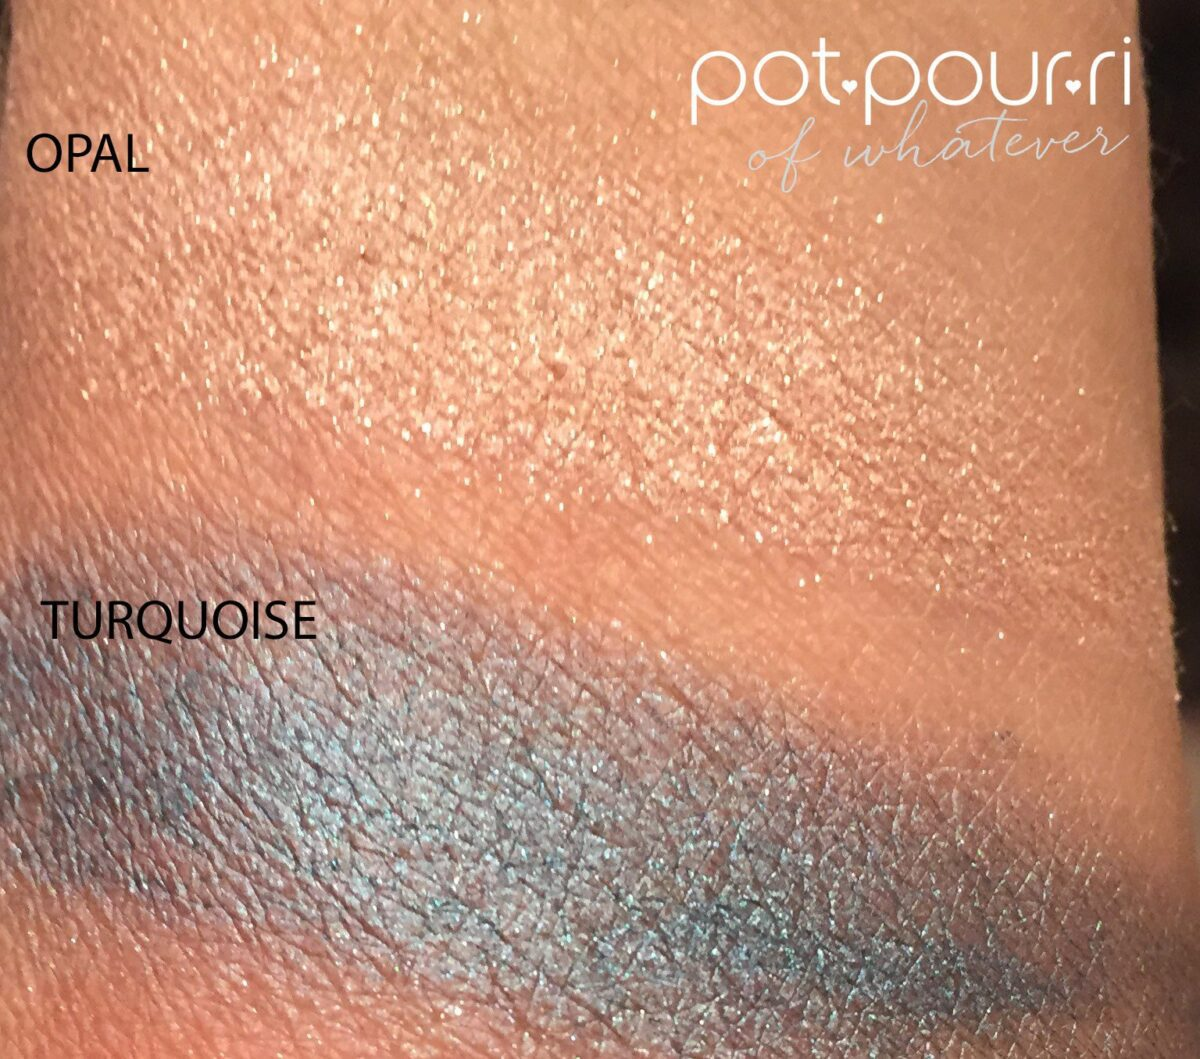 Turquoise Cream and Opal powder swatches